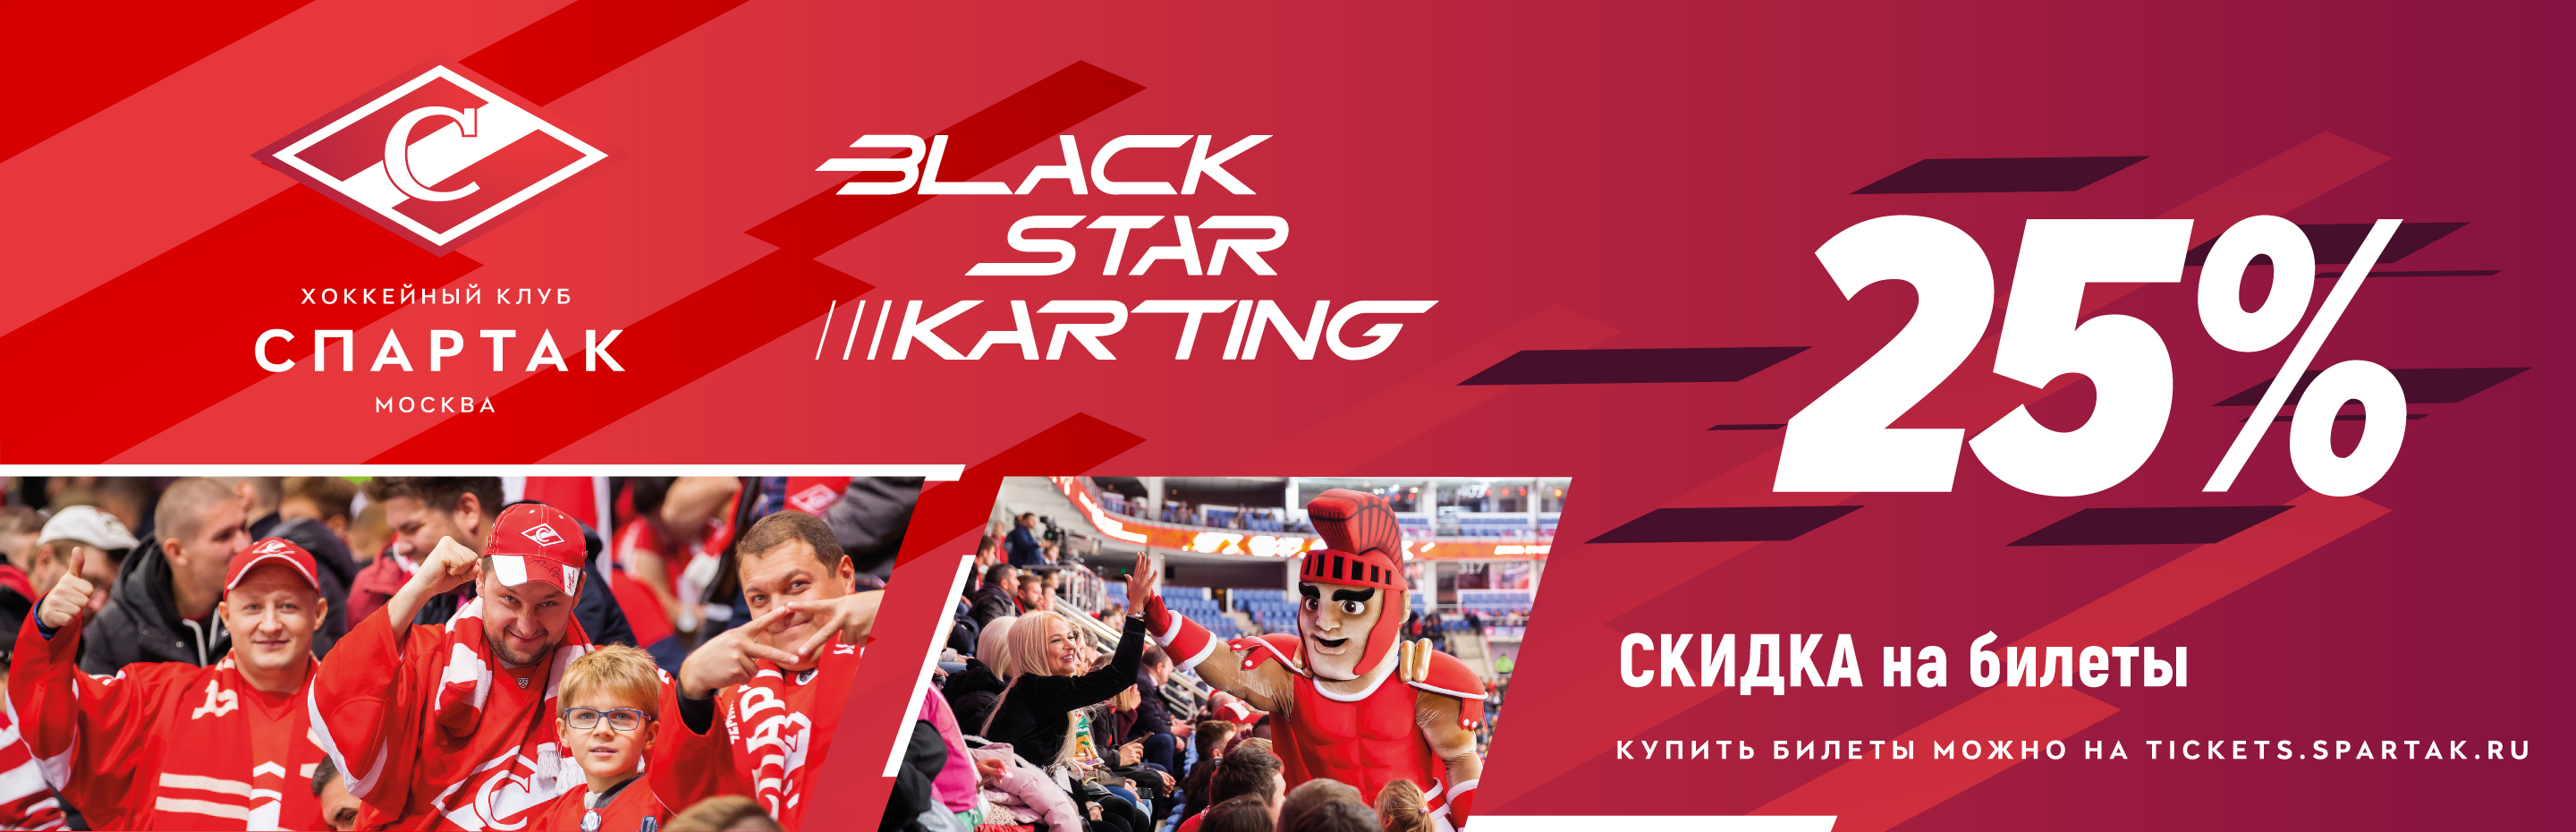 На хоккей с Black Star Karting!